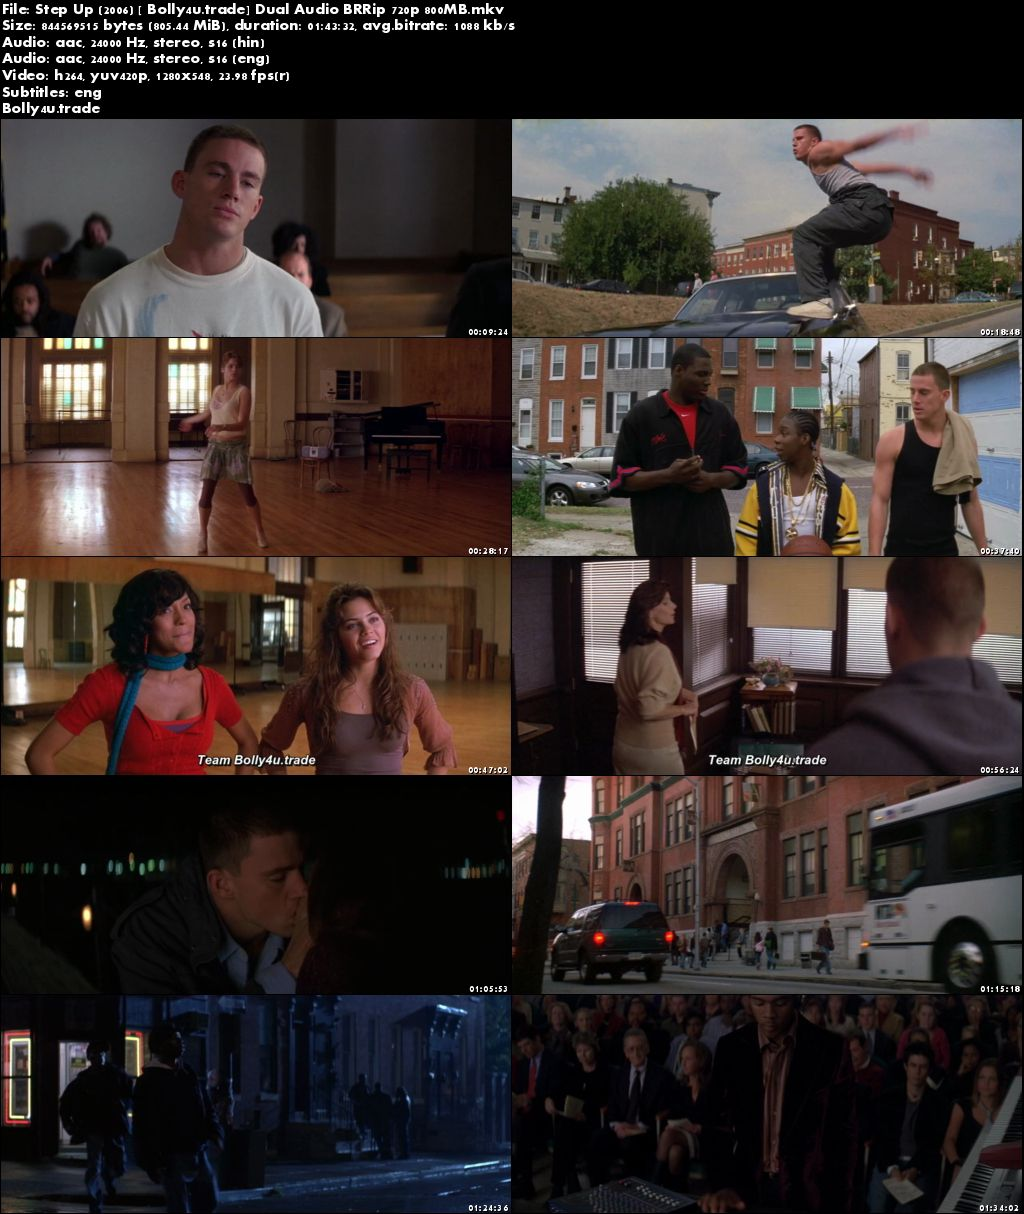 Step Up 2006 BRRip 350MB Hindi Dual Audio 480p Download